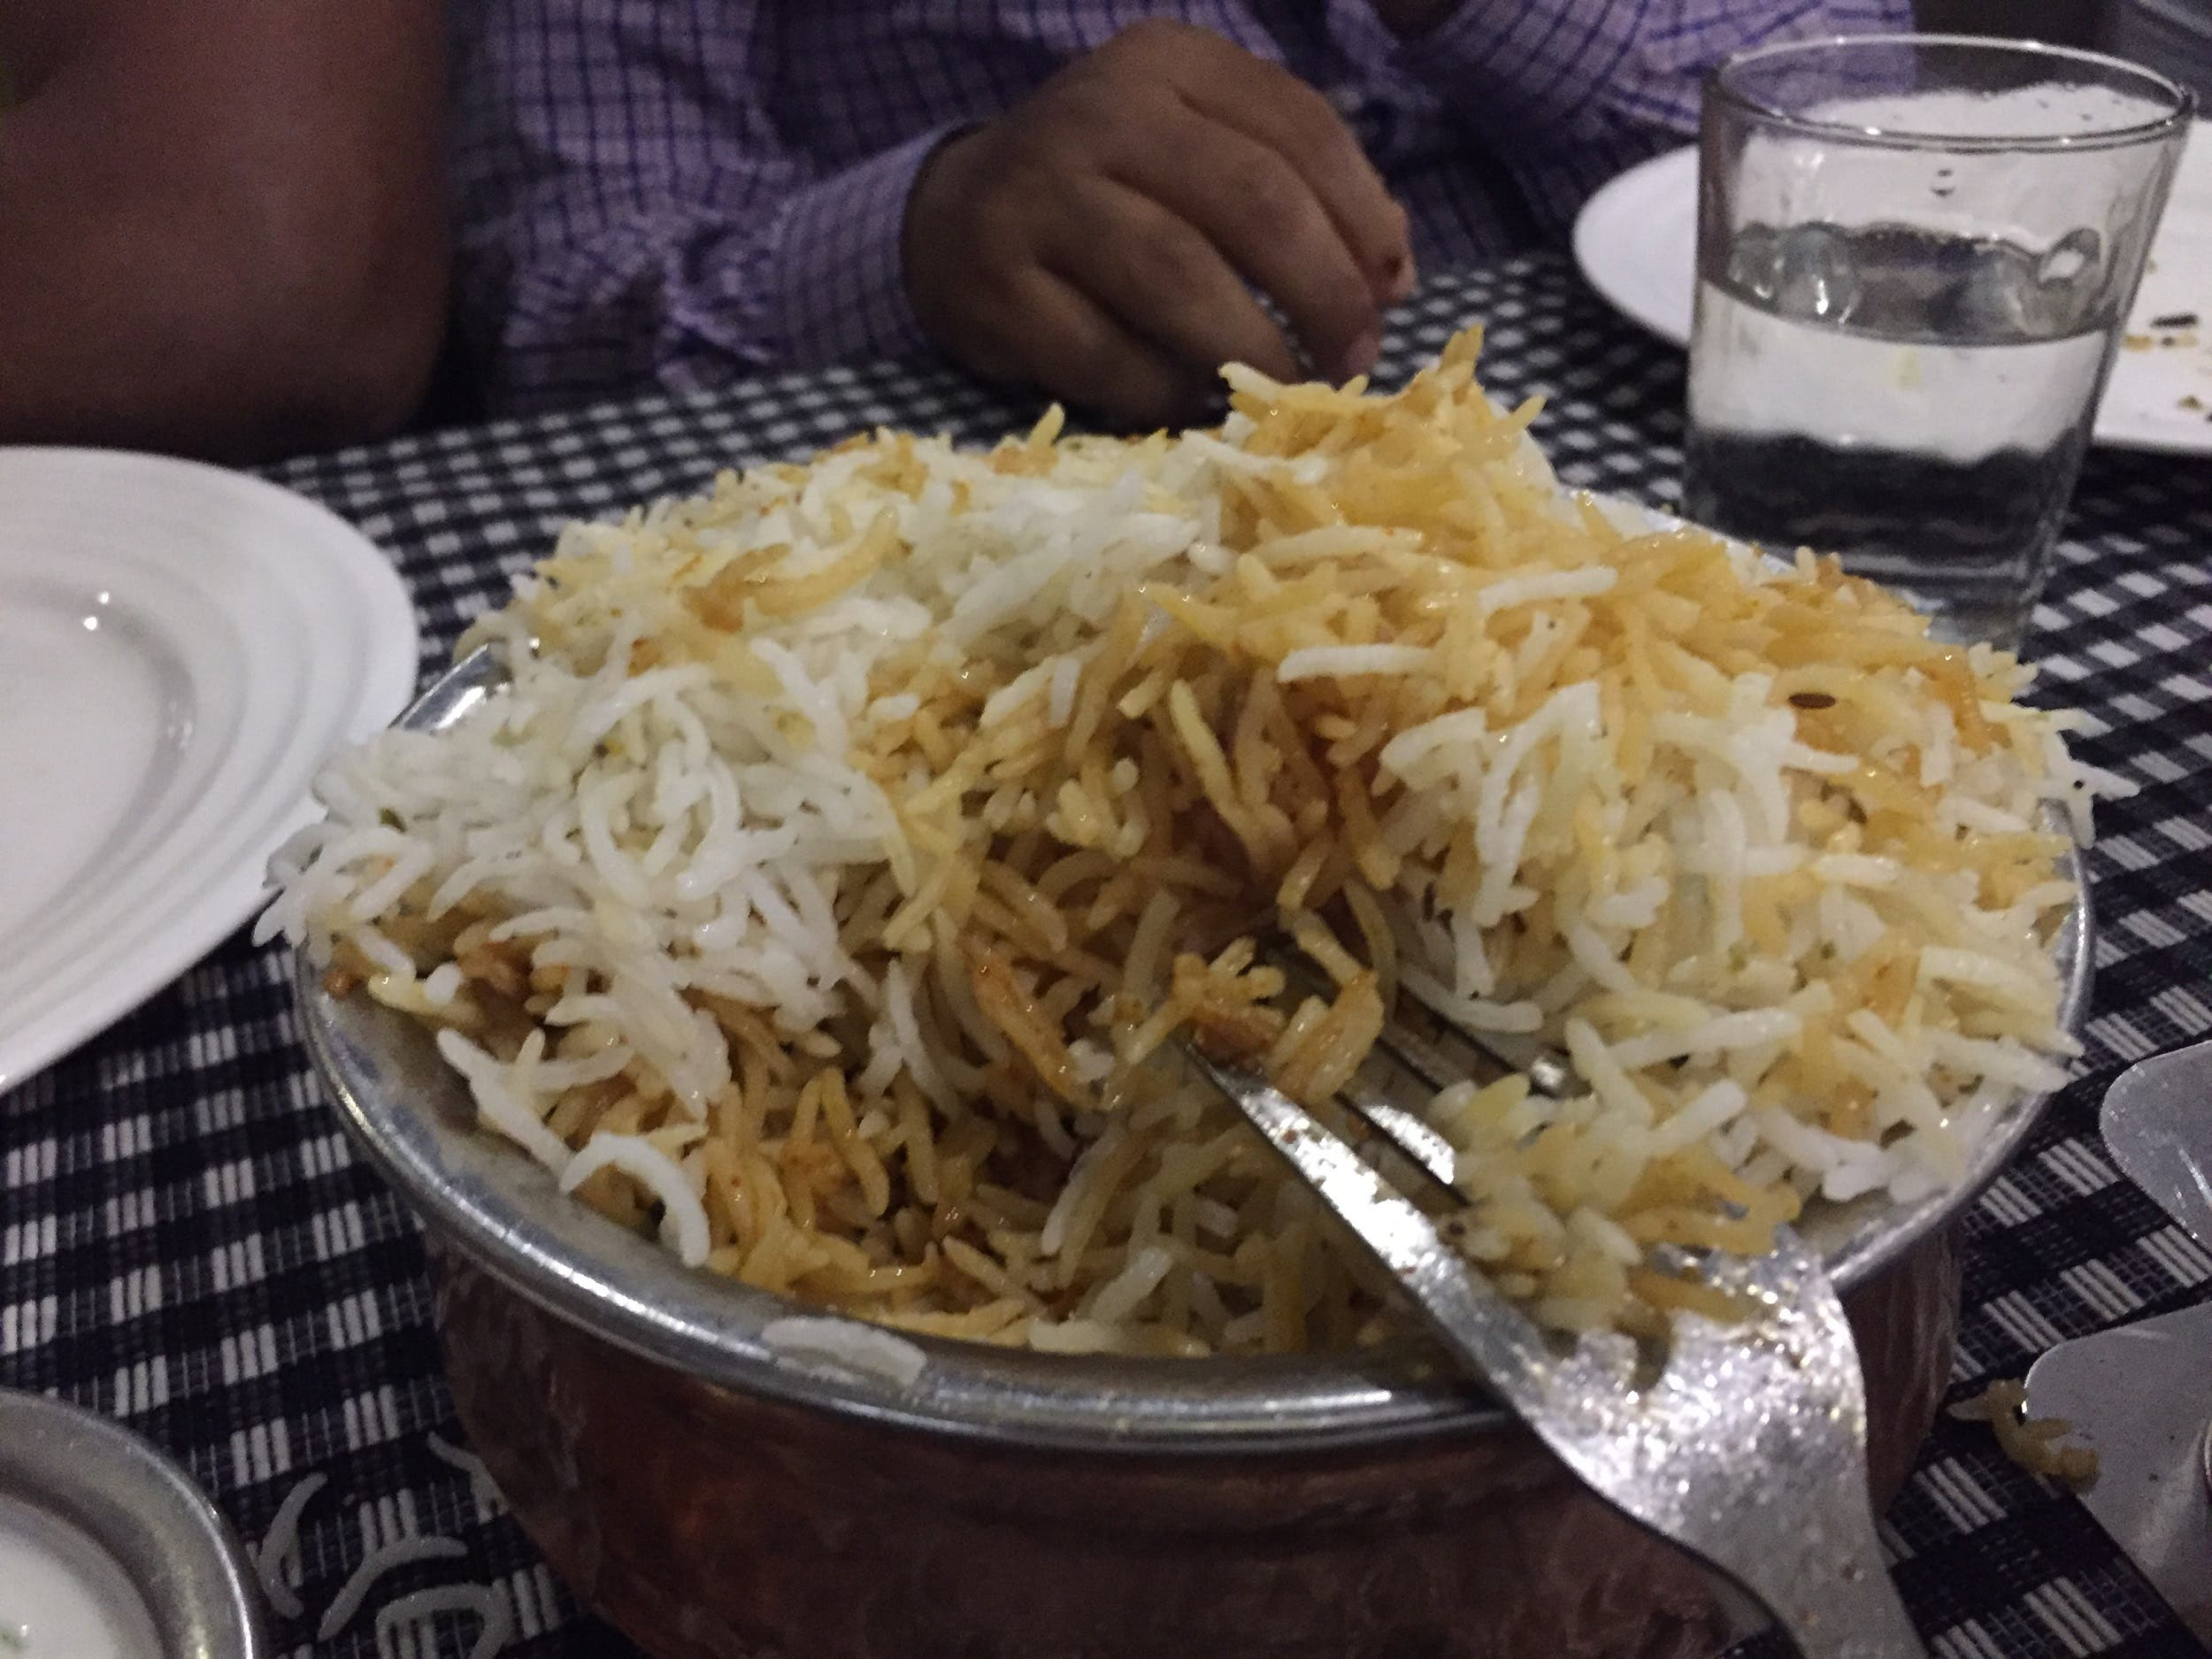 One of the most famous Indian biryani, the Hyderabadi Biryani, was introduced by the Nizams of Hyderabad, who were great patrons of rich food. (Supplied)